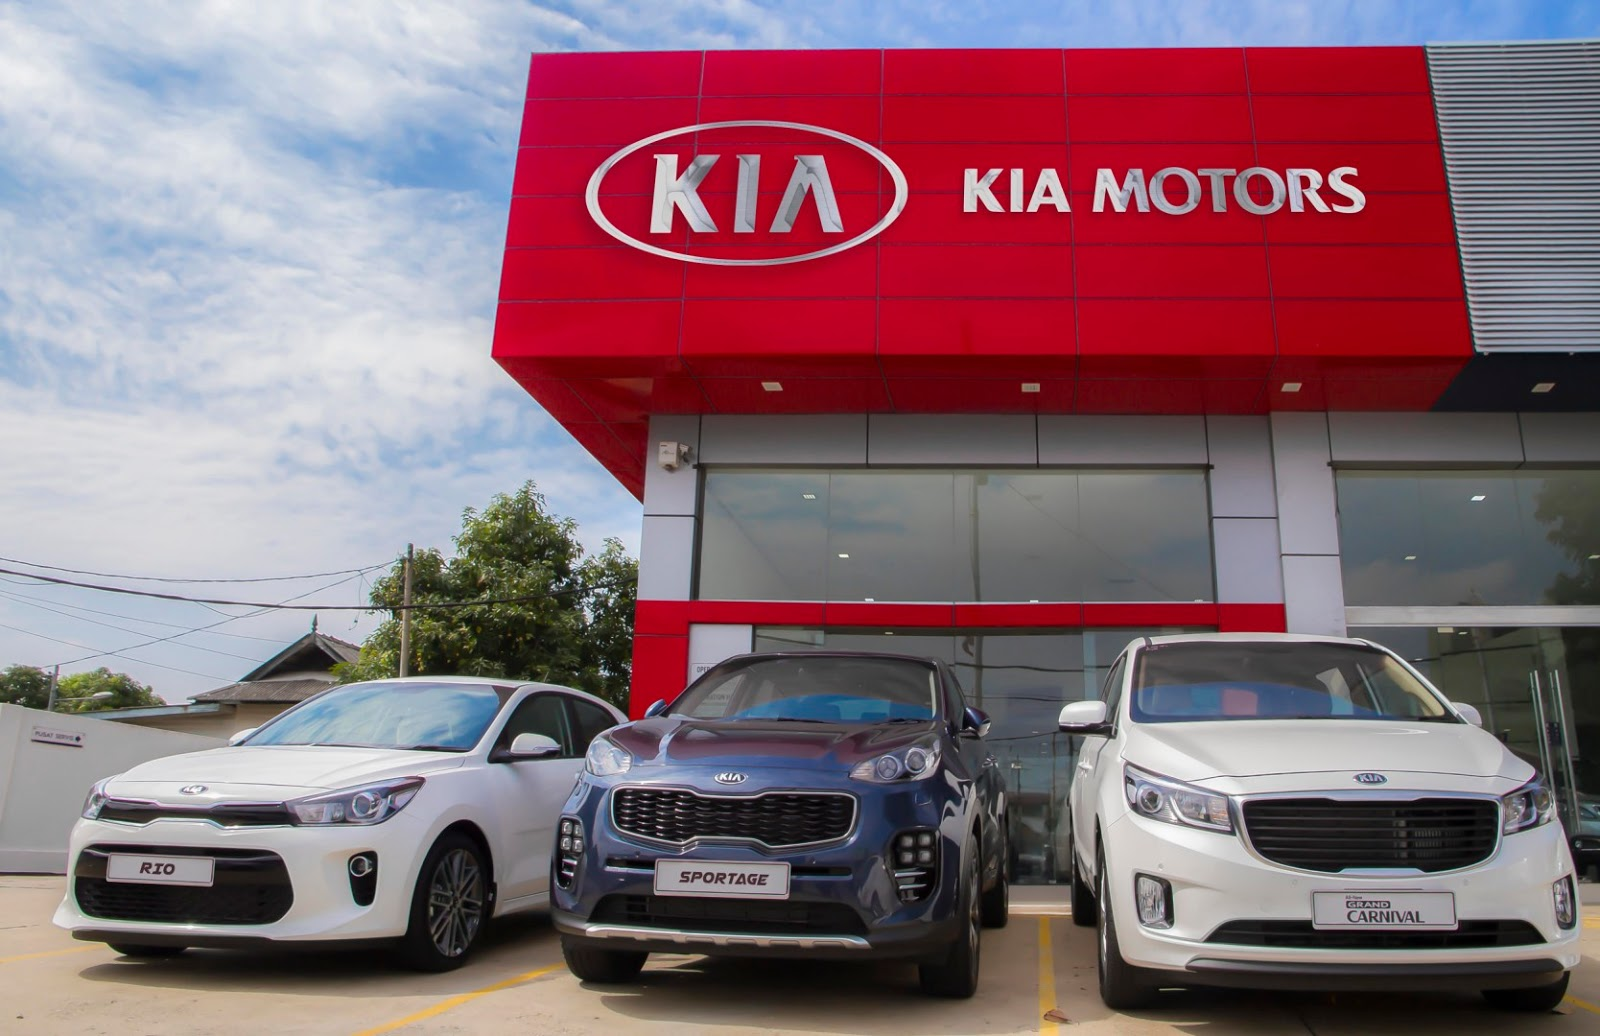 sorento kia monitoring system offers camera discounts promotions car deals new special